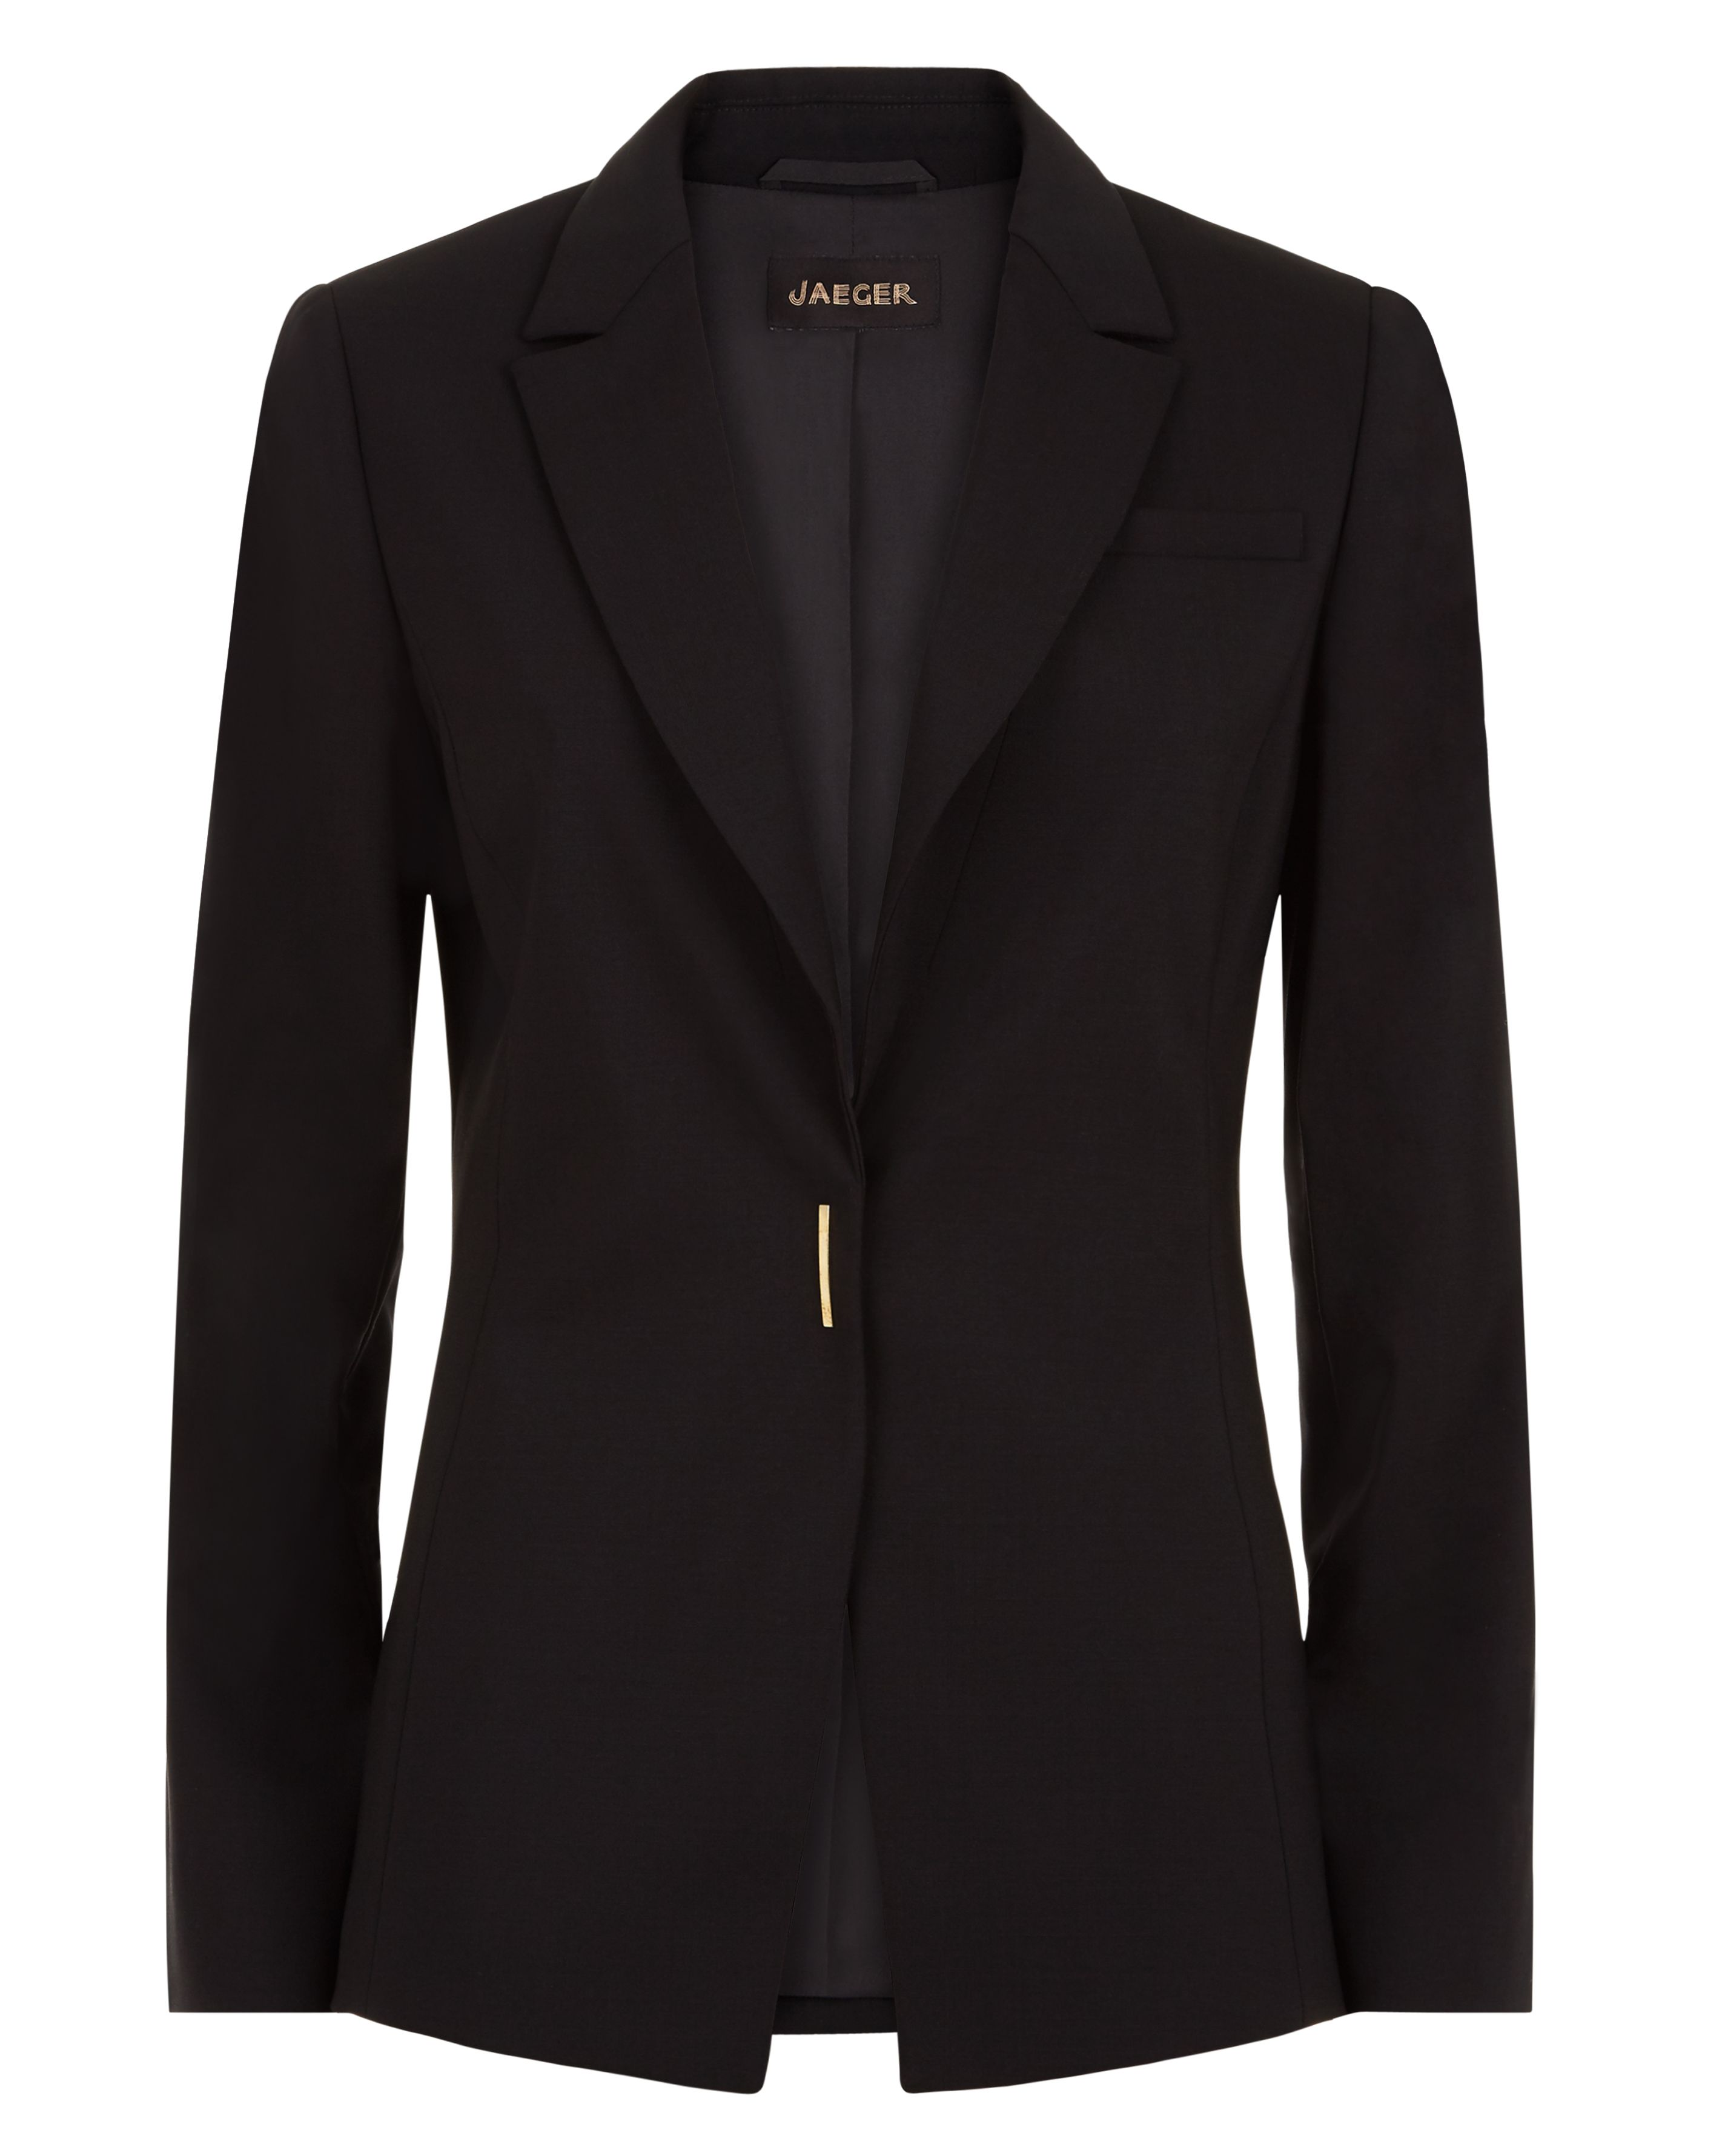 Jaeger Wool Metal Bar Snap Jacket, Black